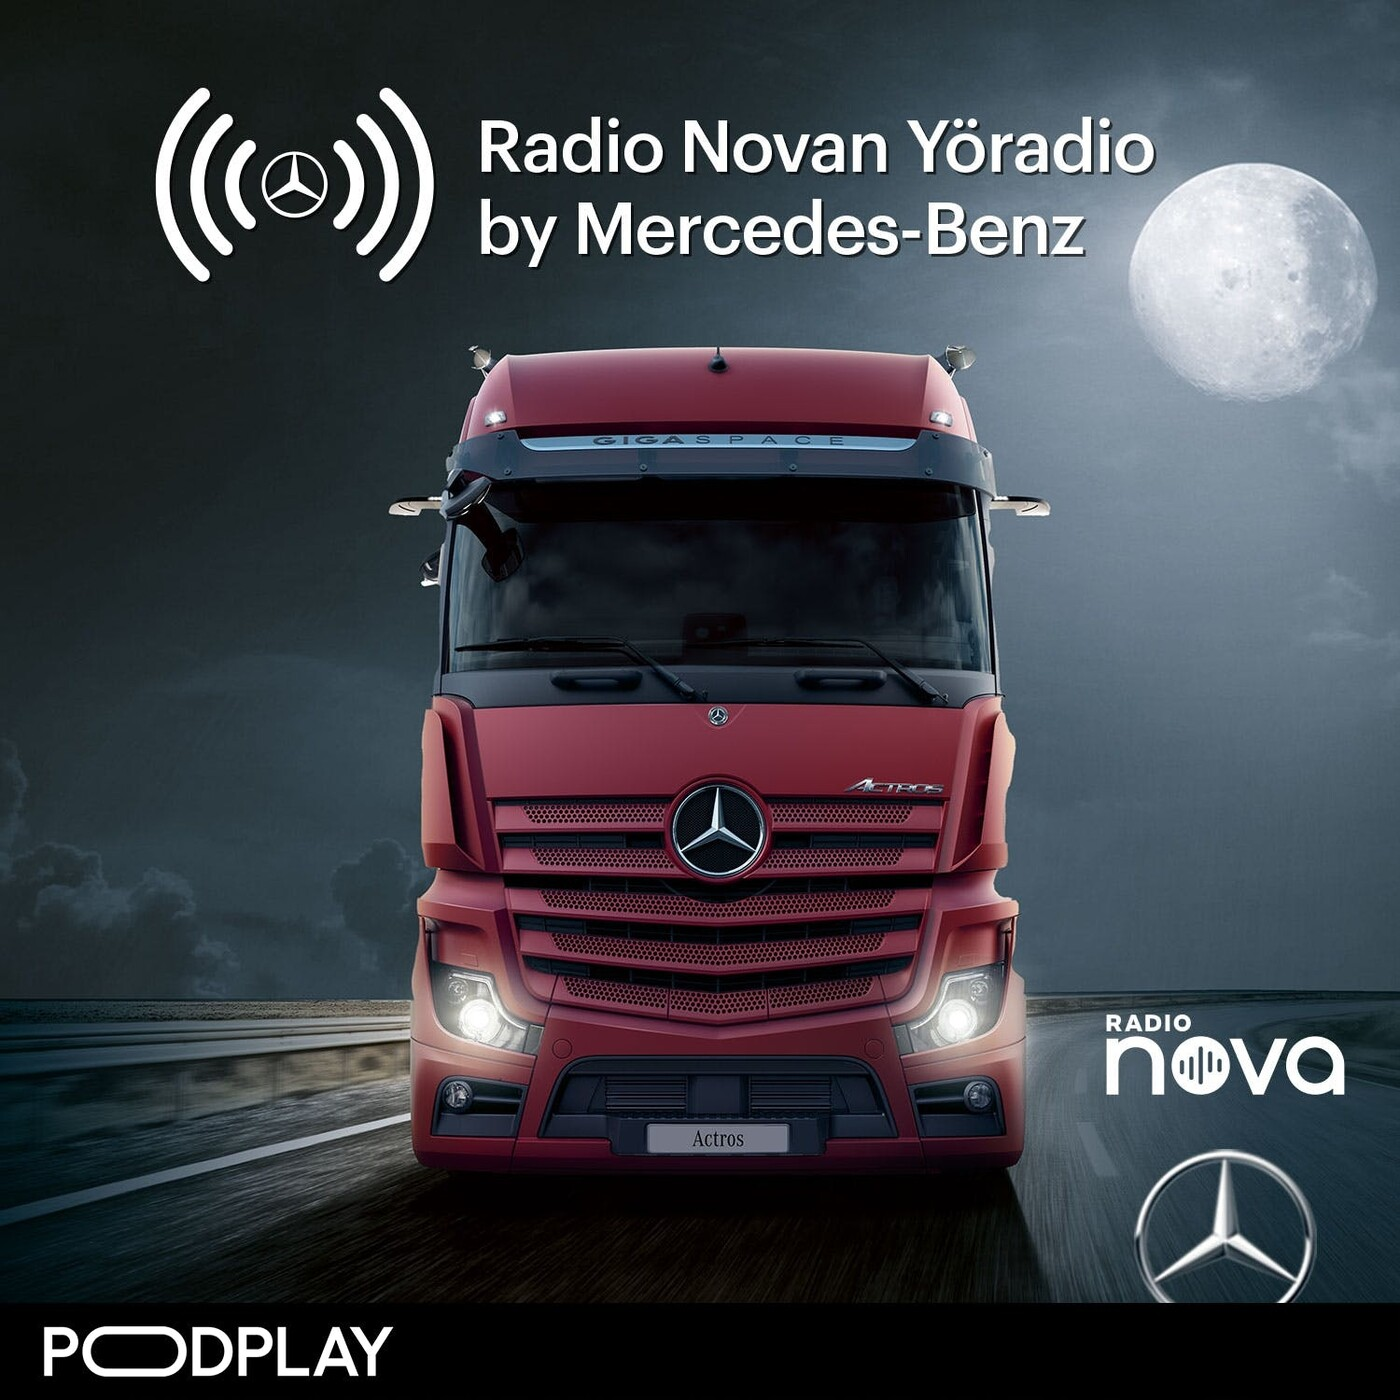 Radio Novan Yöradio by Mercedes Benz – NOLLAILTA, torstaina 24.9.